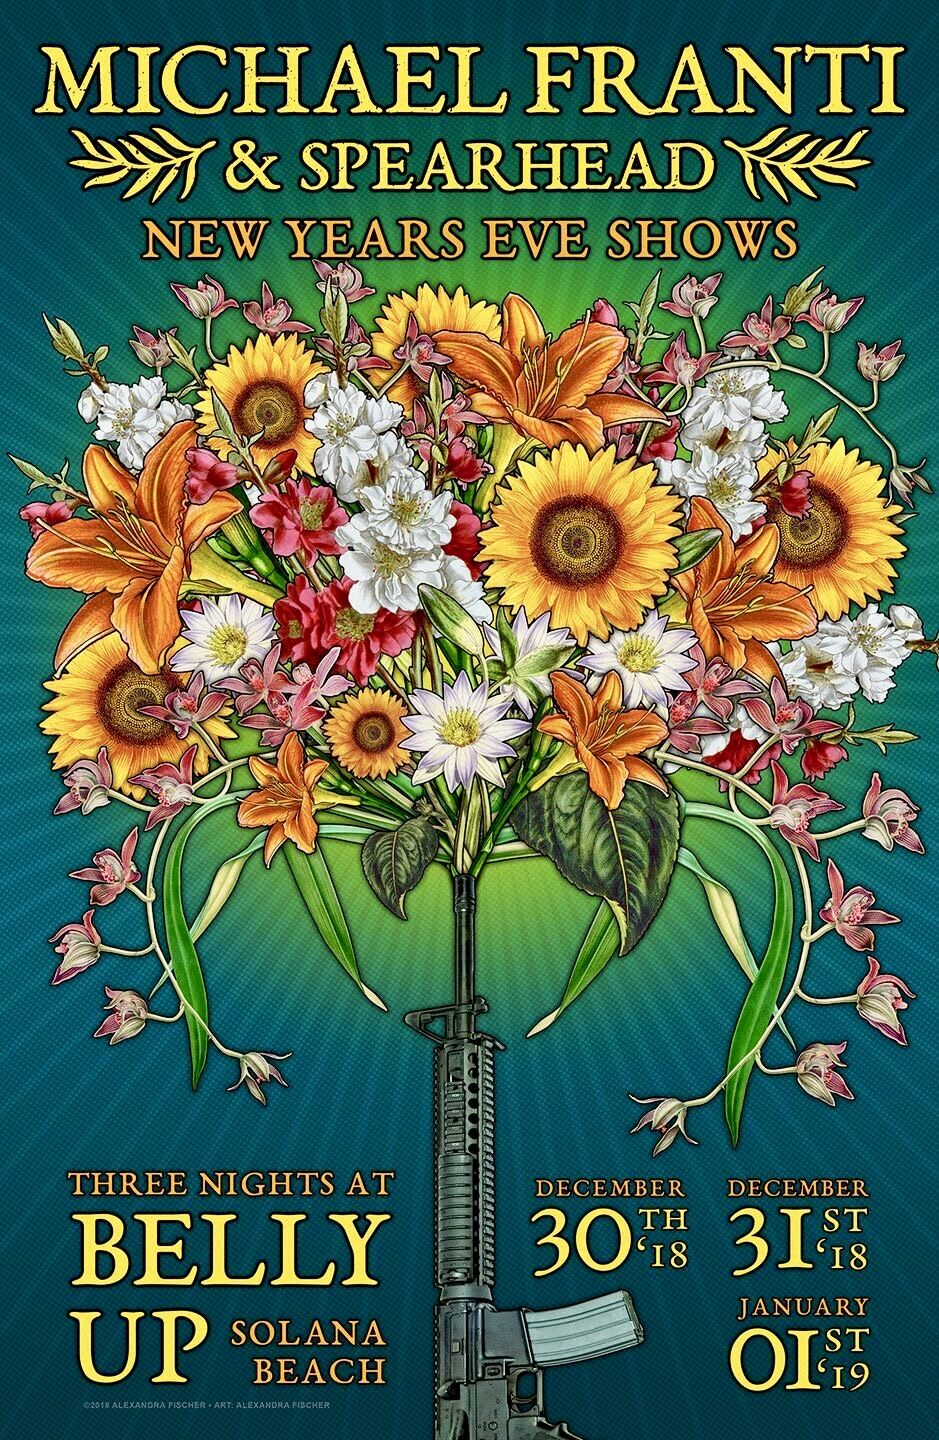 Poster art by Suzanne Meacham on Poster art Concert